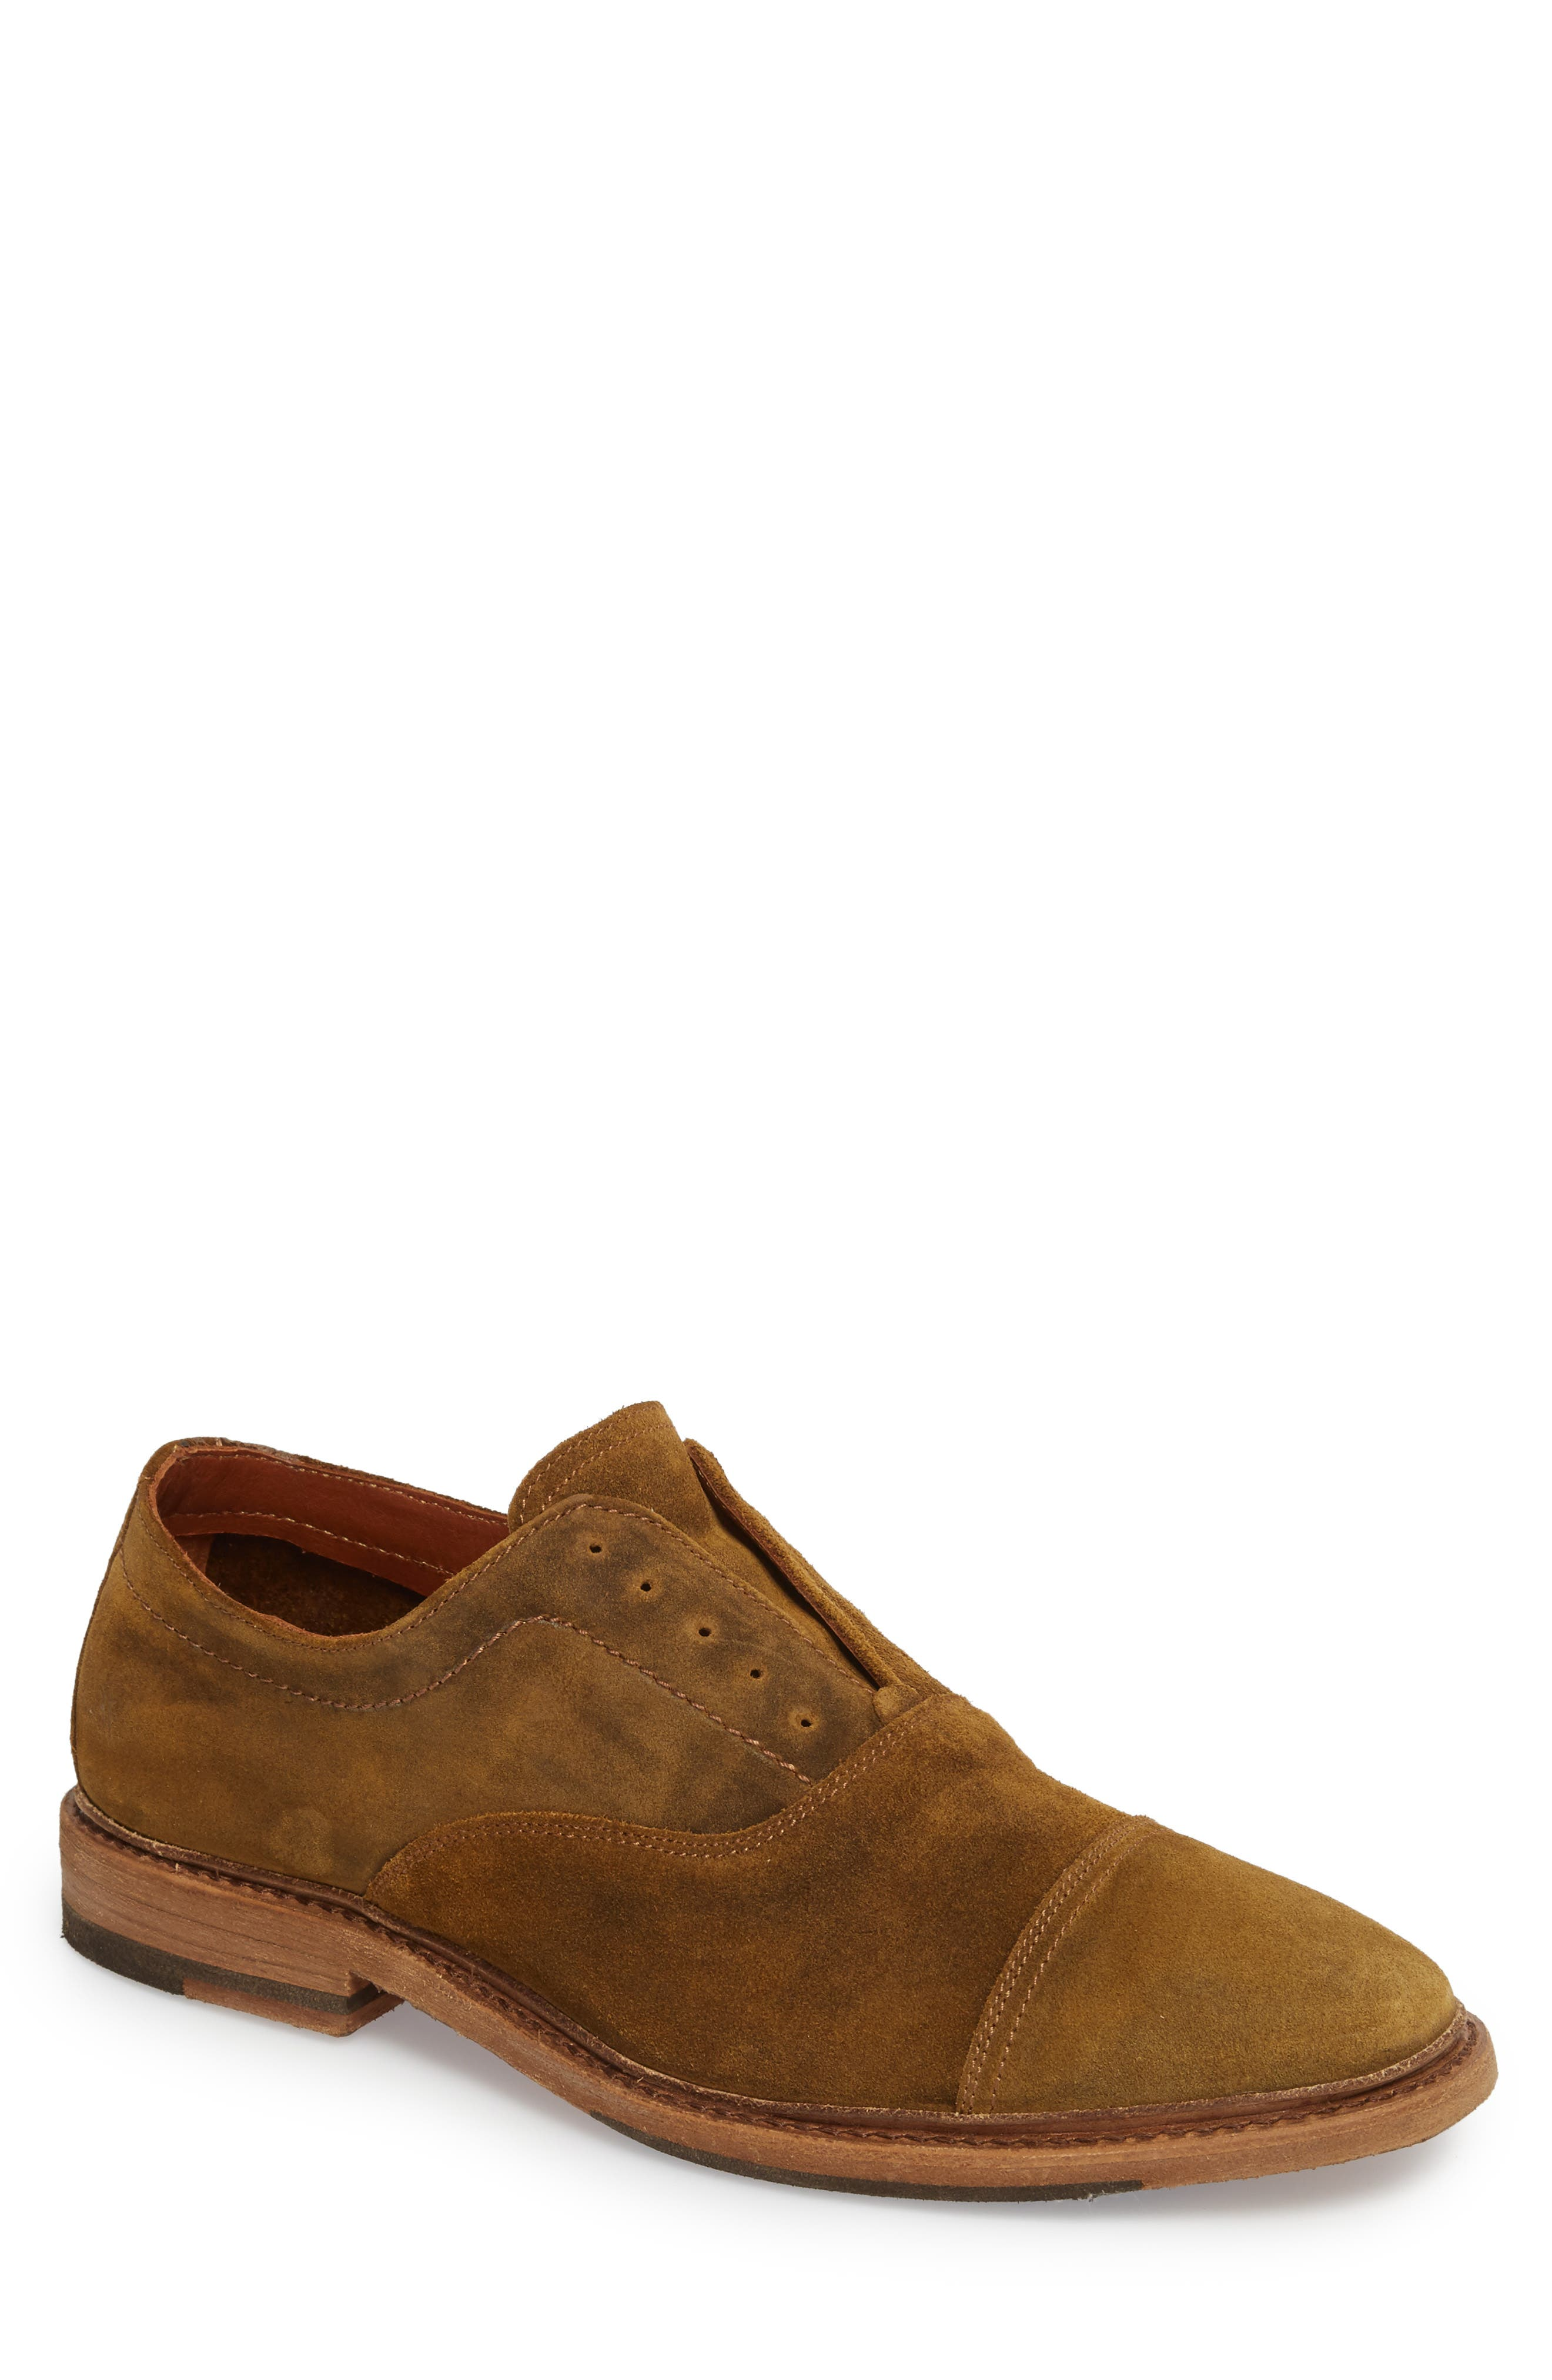 Paul Bal Cap Toe Oxford,                             Main thumbnail 1, color,